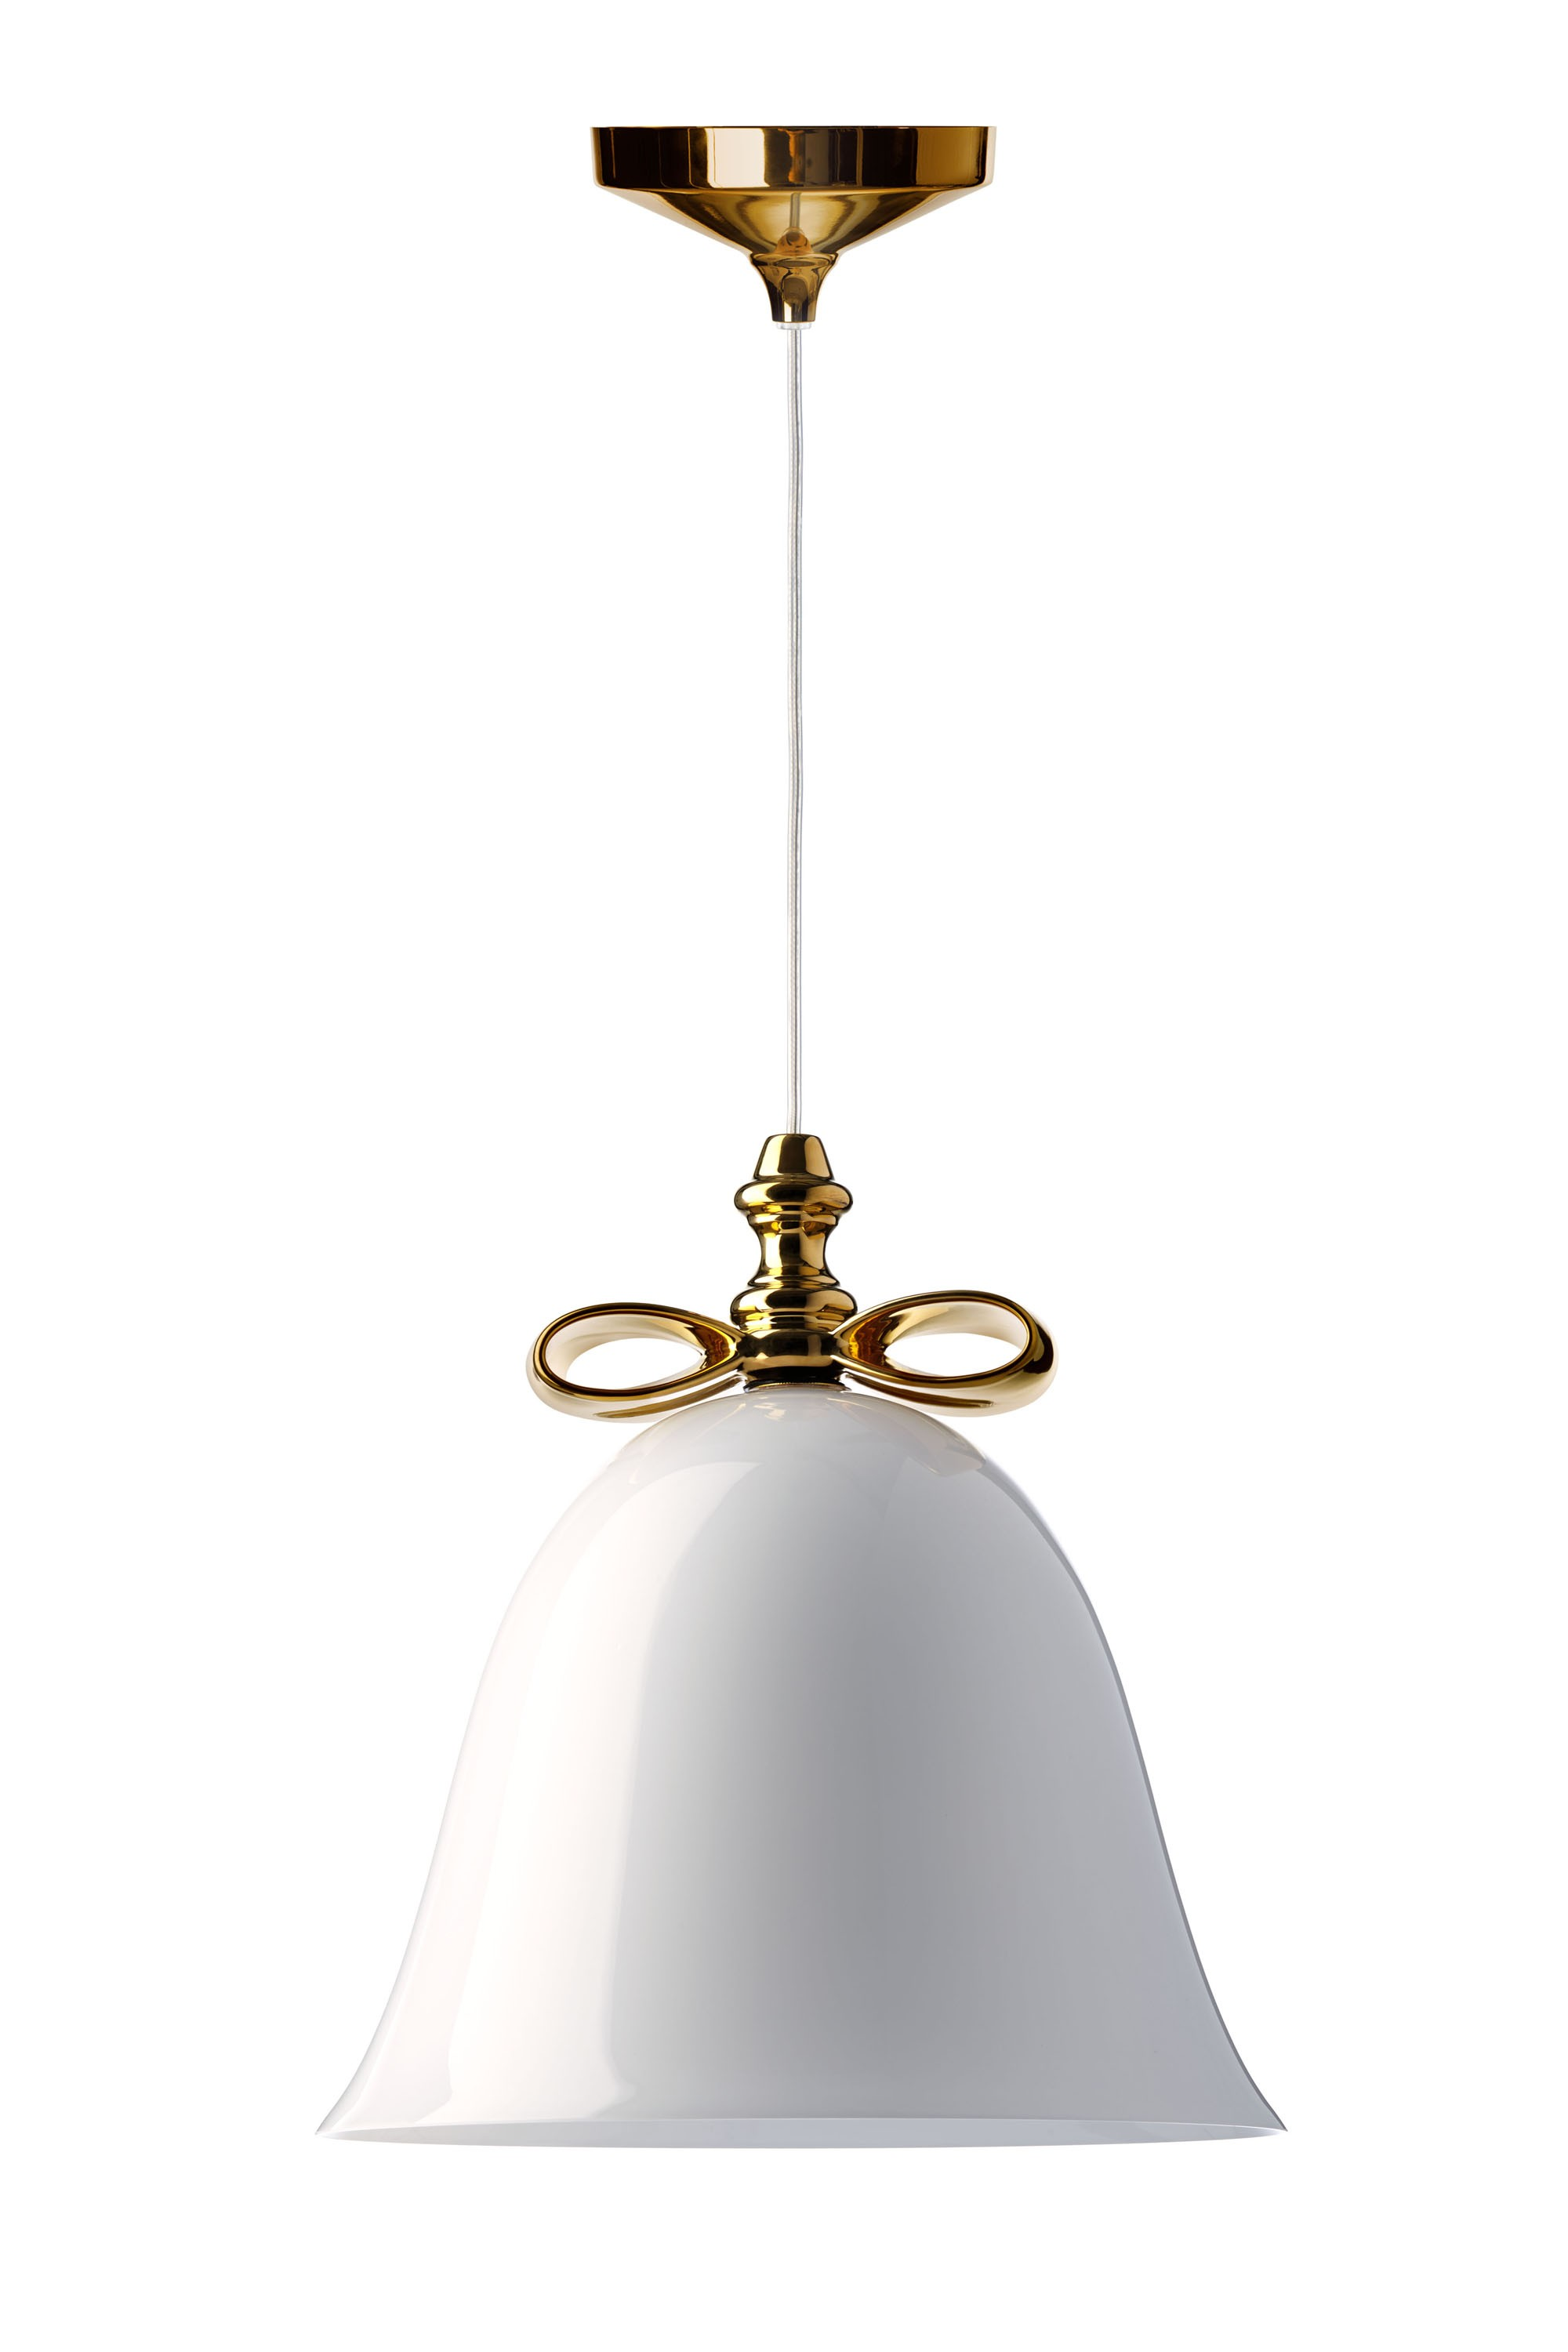 Moooi Bell Suspension Lamp Gr Shop Canada